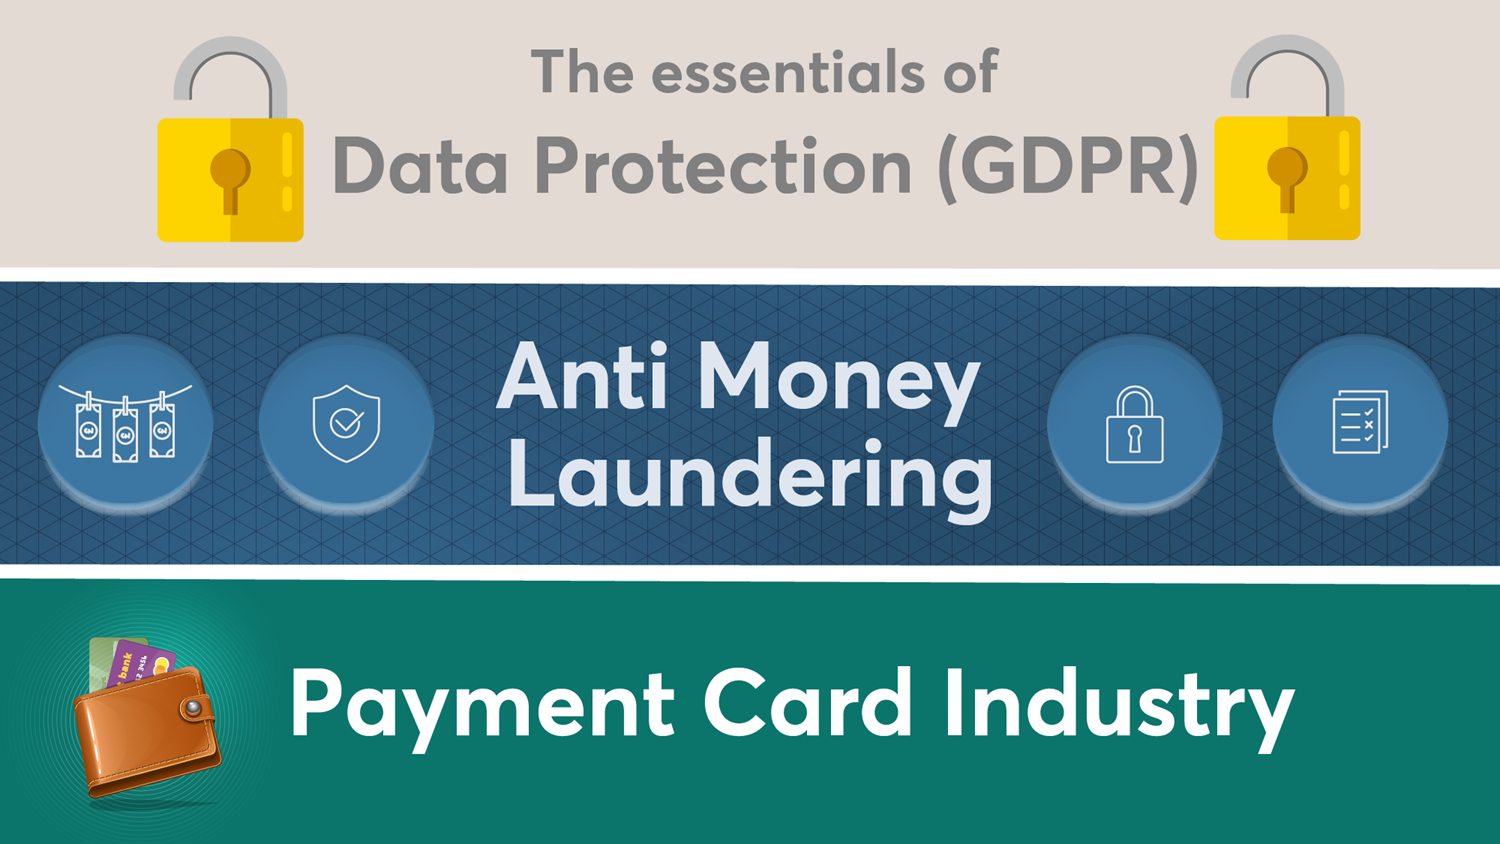 Data_Protection_GDPR_Anti_Money_Laundering_and_Payment_Card_Industry_Package